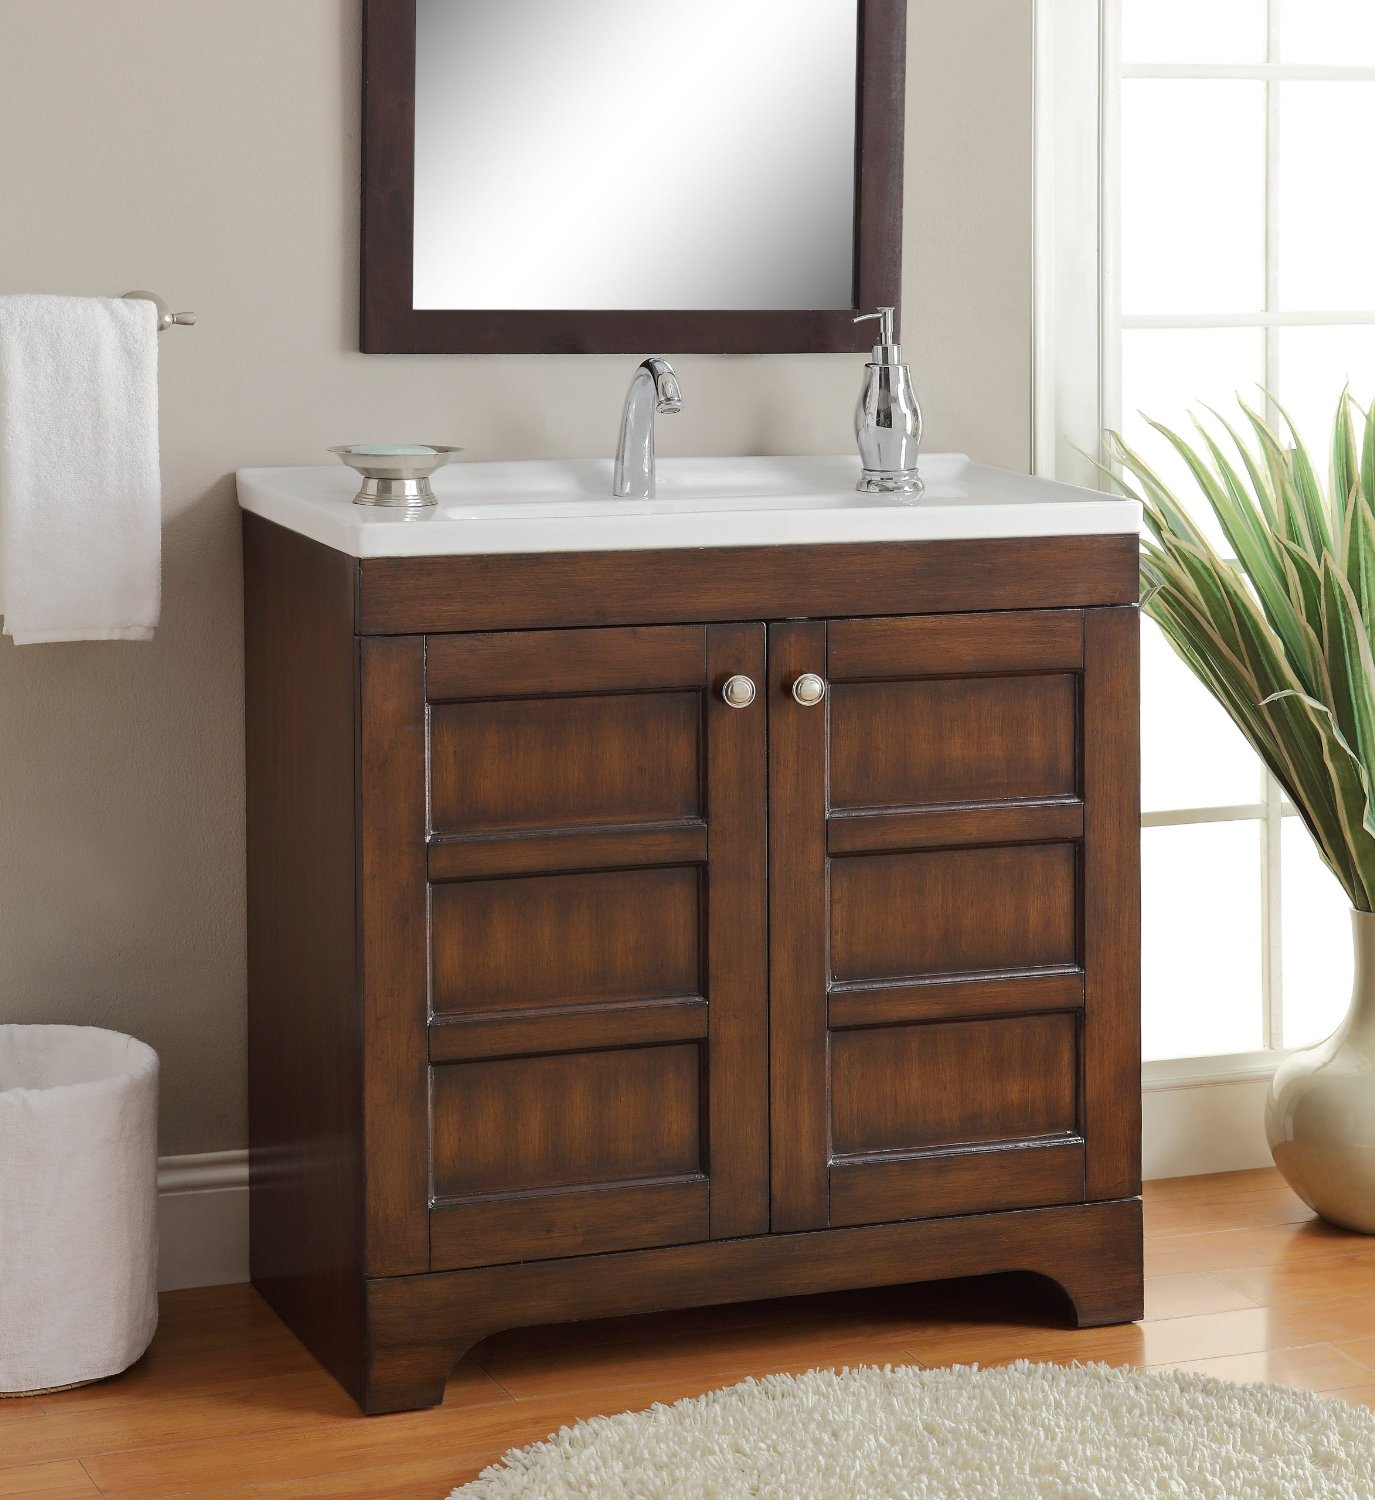 Adelina 32 inch contemporary bathroom vanity vitreous - Bathroom vanities 32 inches wide ...